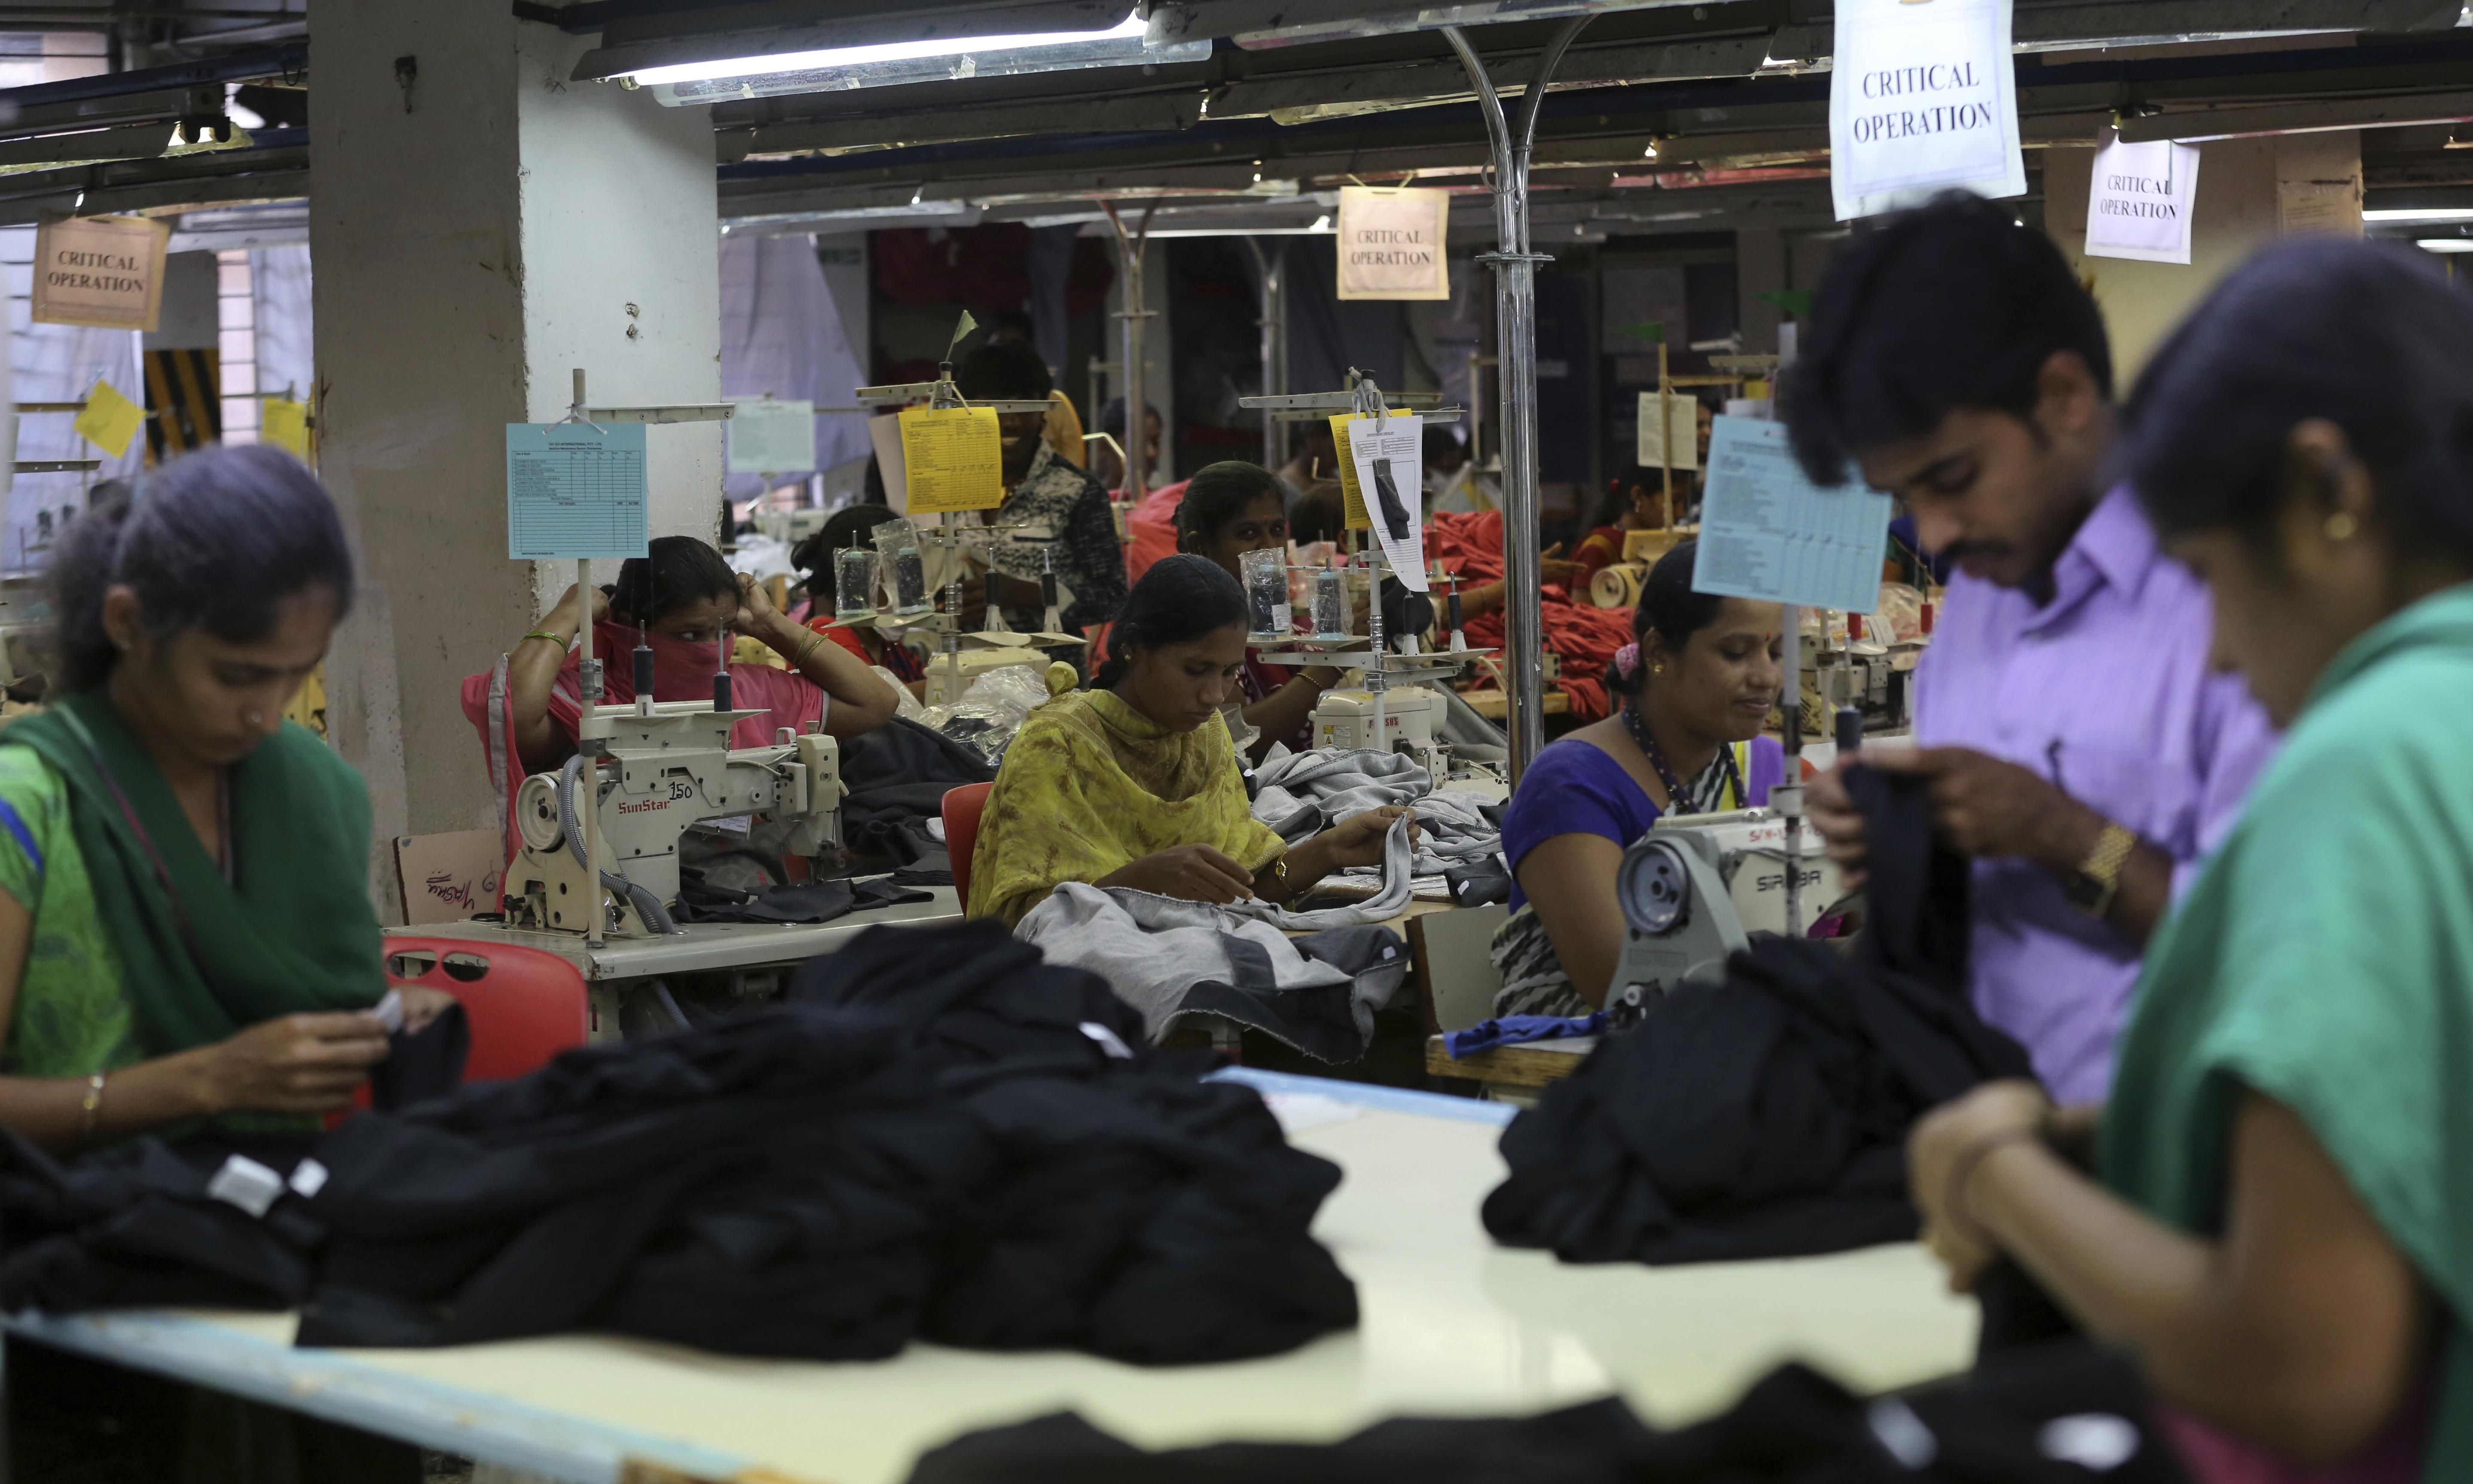 India's slowing growth blamed on 'big mistake' of demonetisation